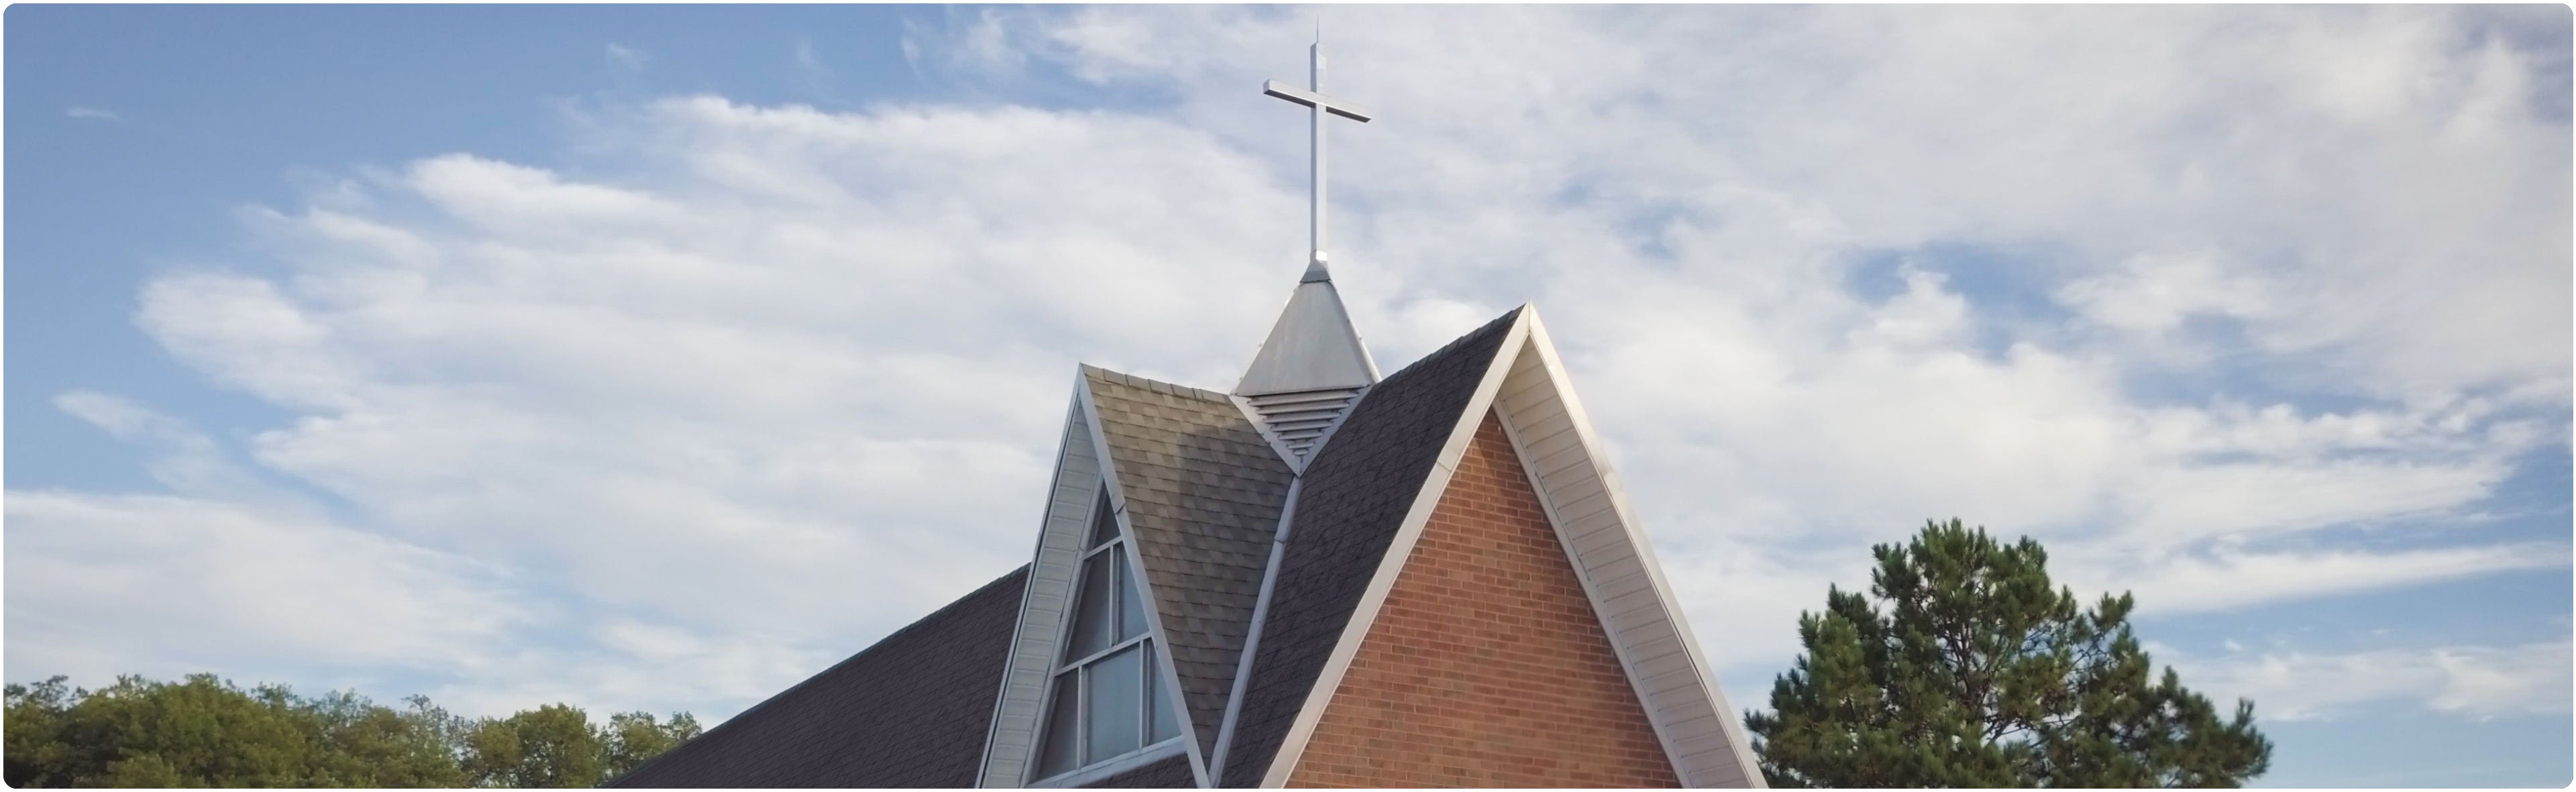 church_roof_3840x1181